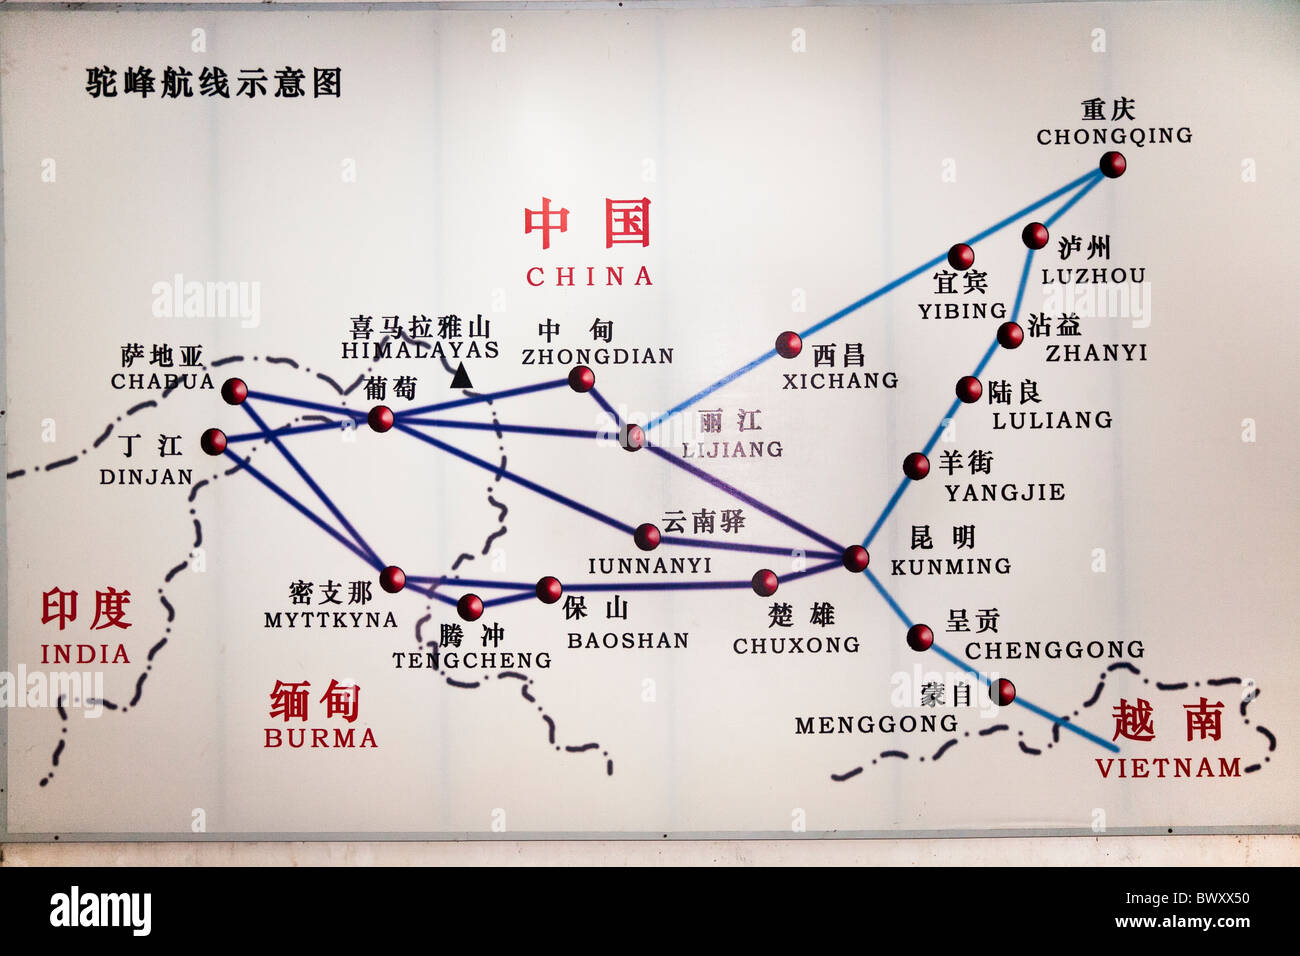 Map exhibit transportation museum of china burma india theater in map exhibit transportation museum of china burma india theater in world war ii yunnanyi yunnan province china gumiabroncs Image collections